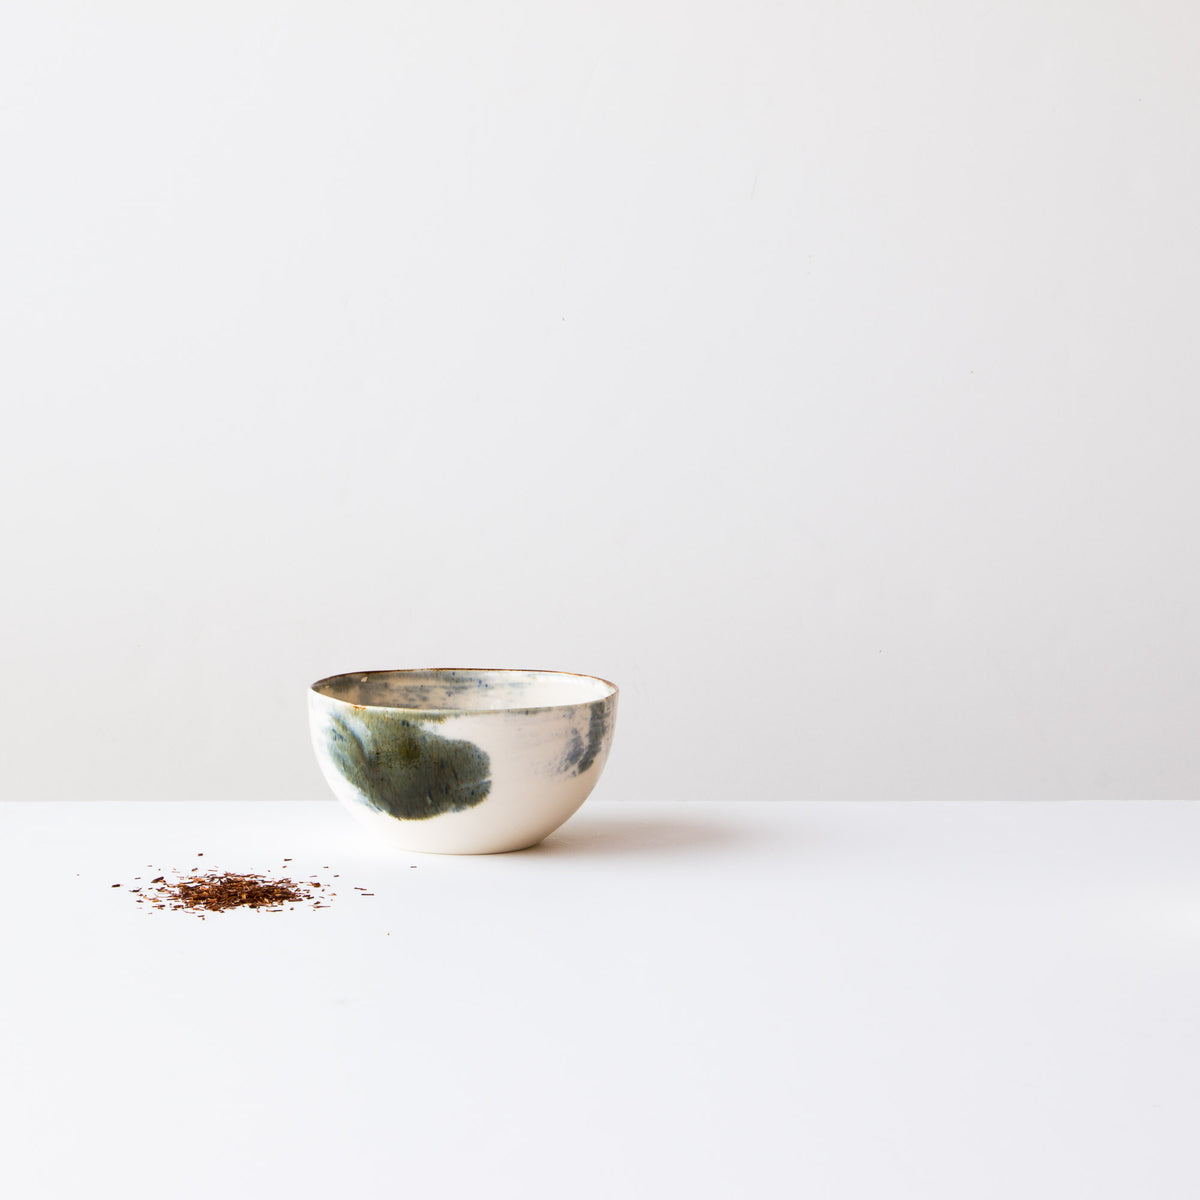 Handmade Porcelain Rice Bowl - White Painted Porcelain - Sold Onbline by Chic & Basta